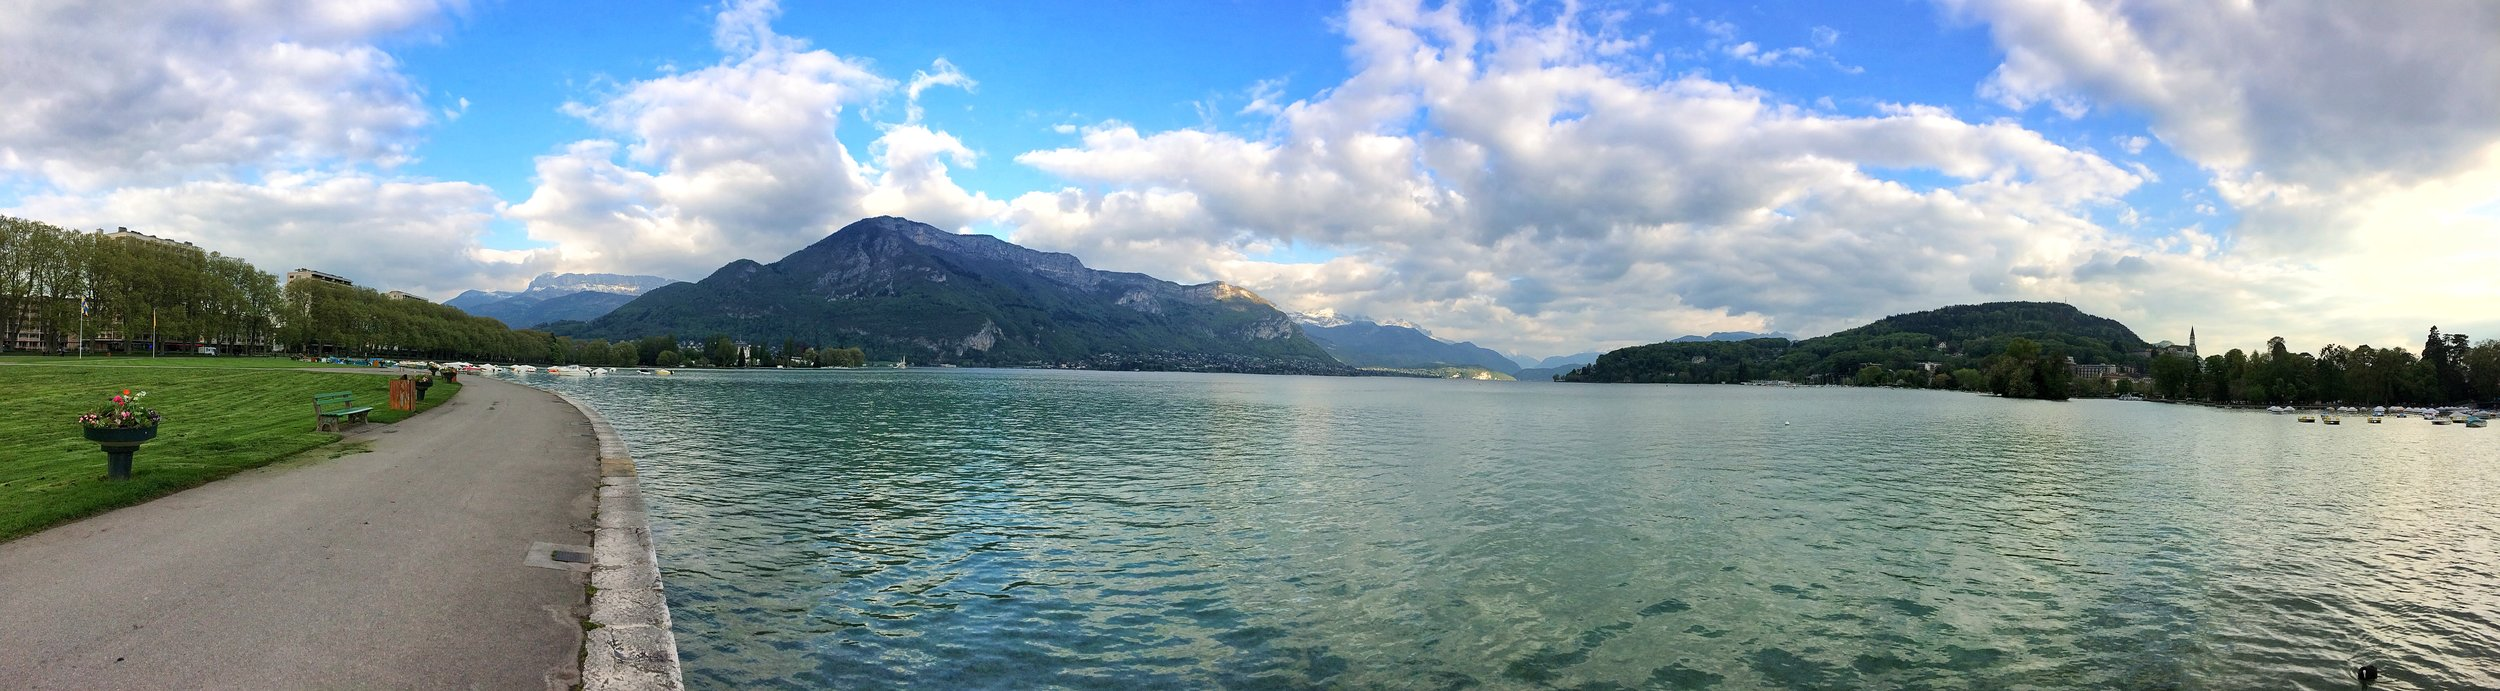 The many parks and paths around Lake Annecy provide amazing views from any spot.